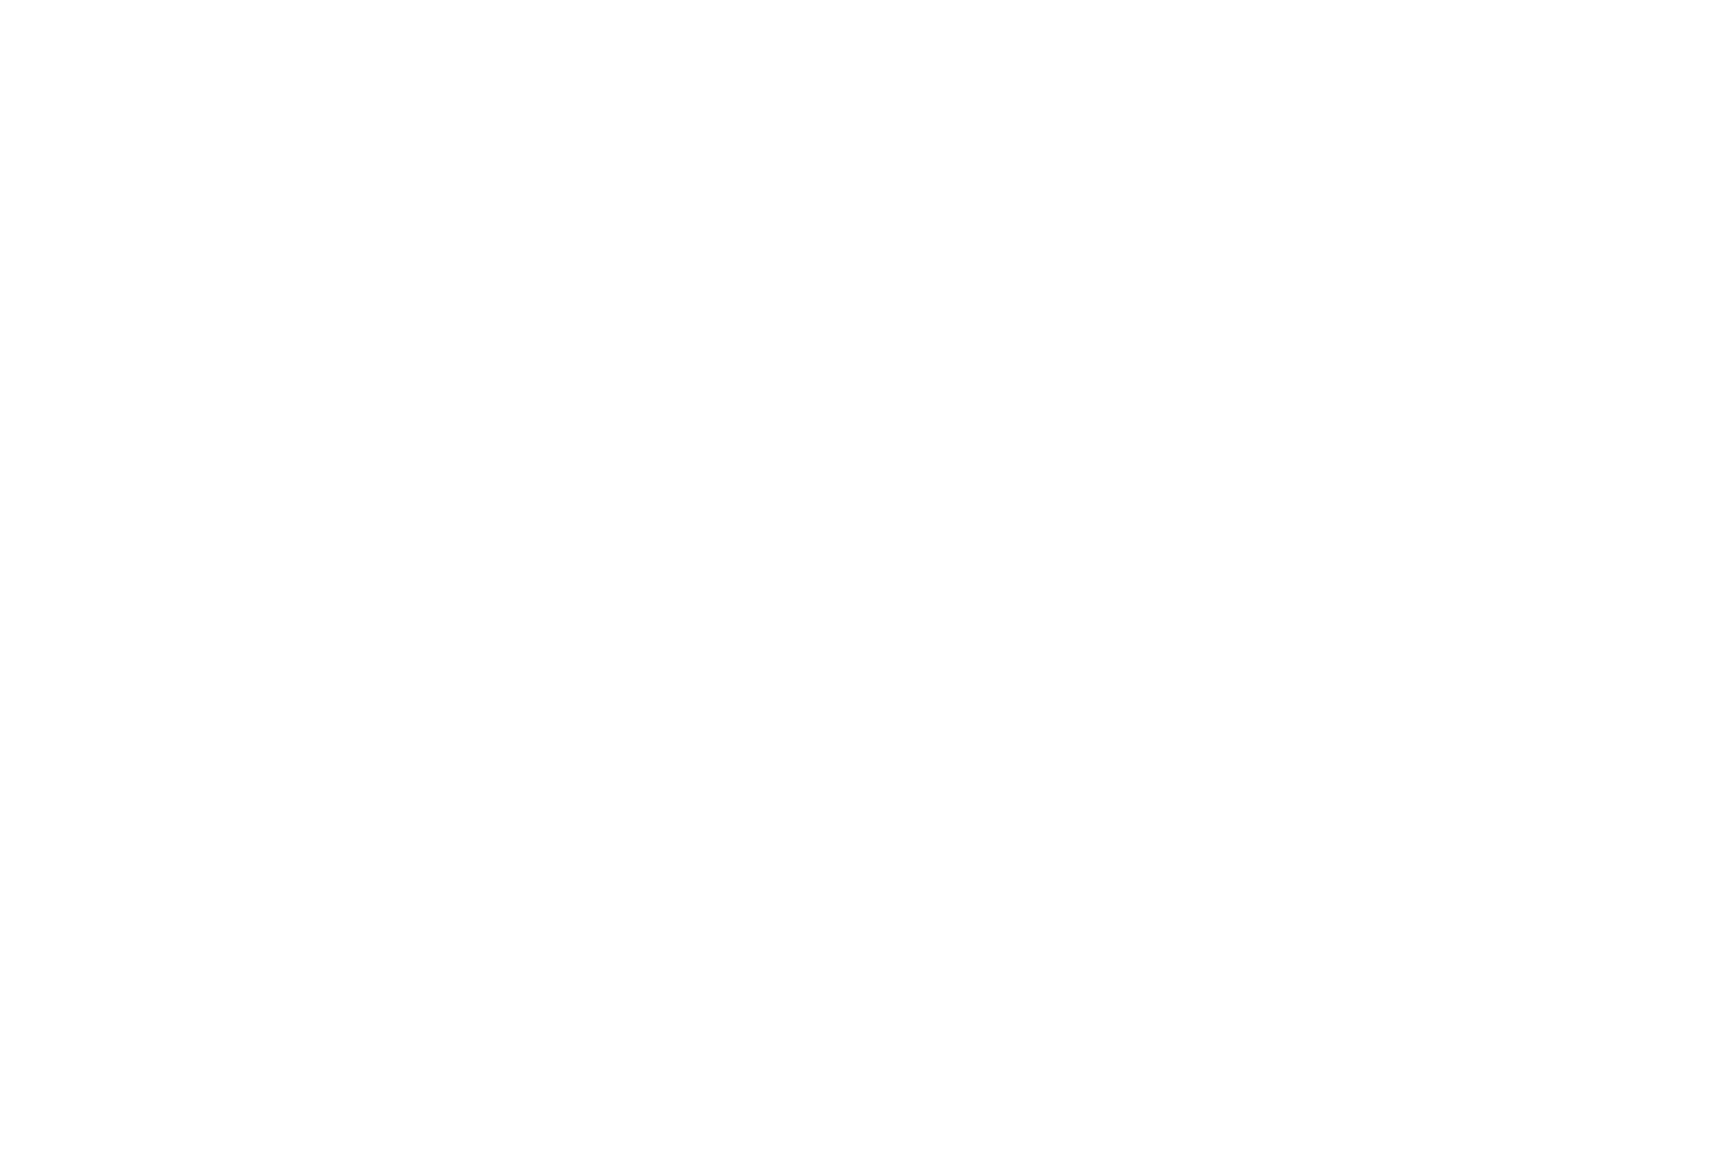 OFFICIAL SELECTION - Boston Galactic STARS - 2018.png